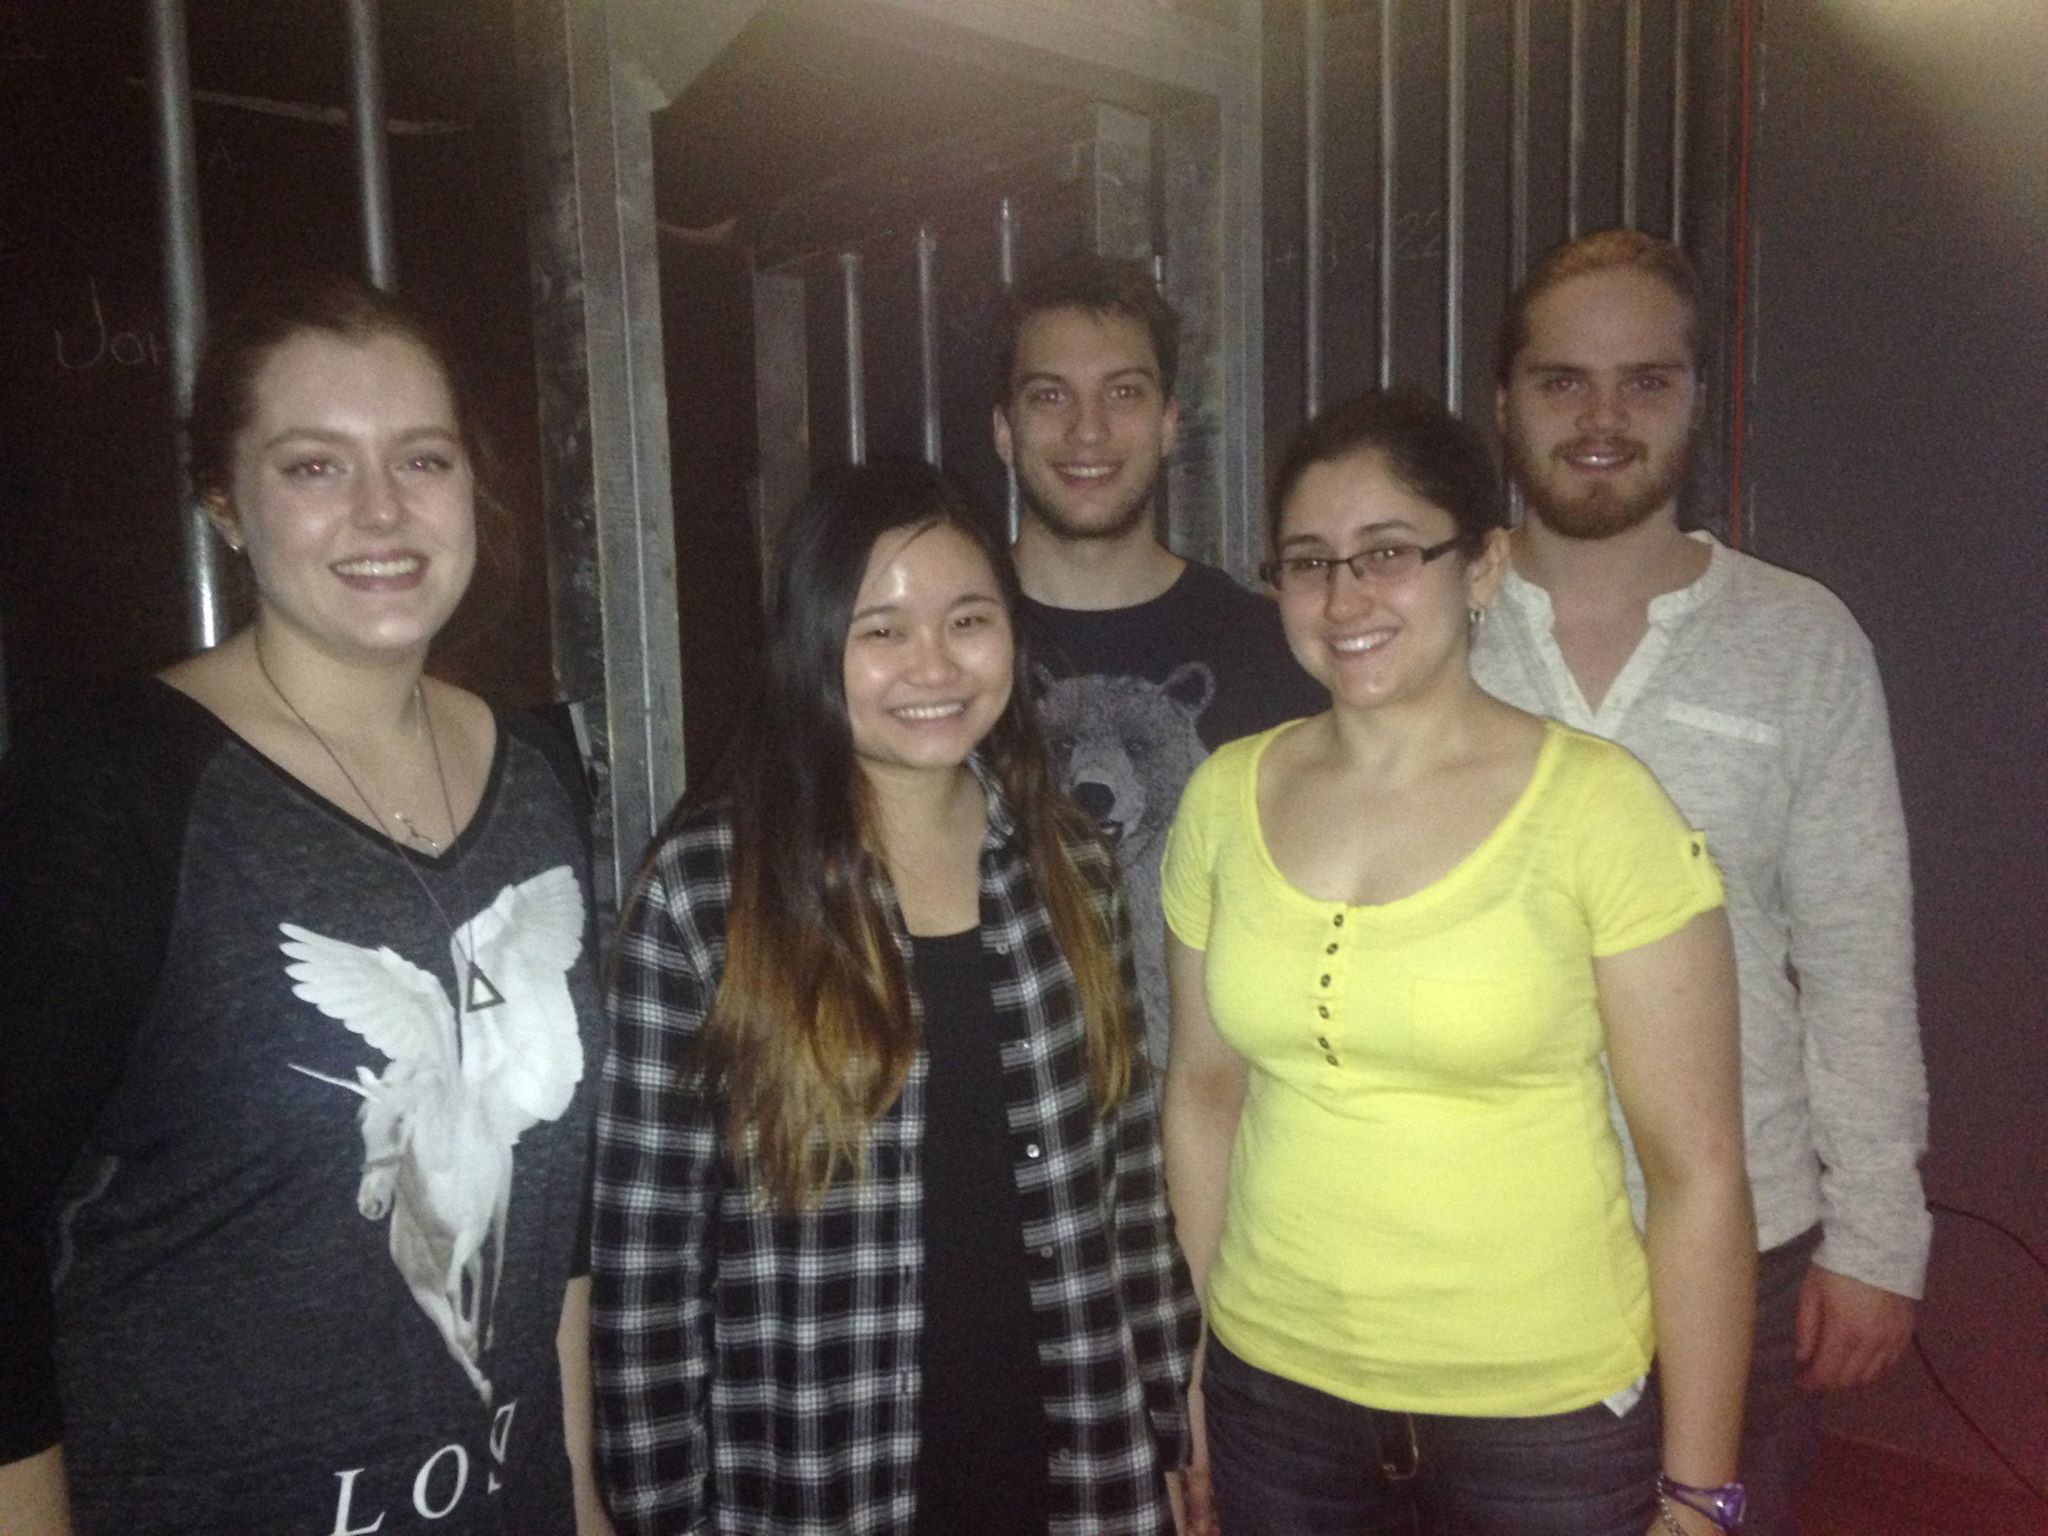 Fall 2015, Group trip to Escape Manor. Left to Right: Quinn, Jade, Nik, Delphine, Ryan